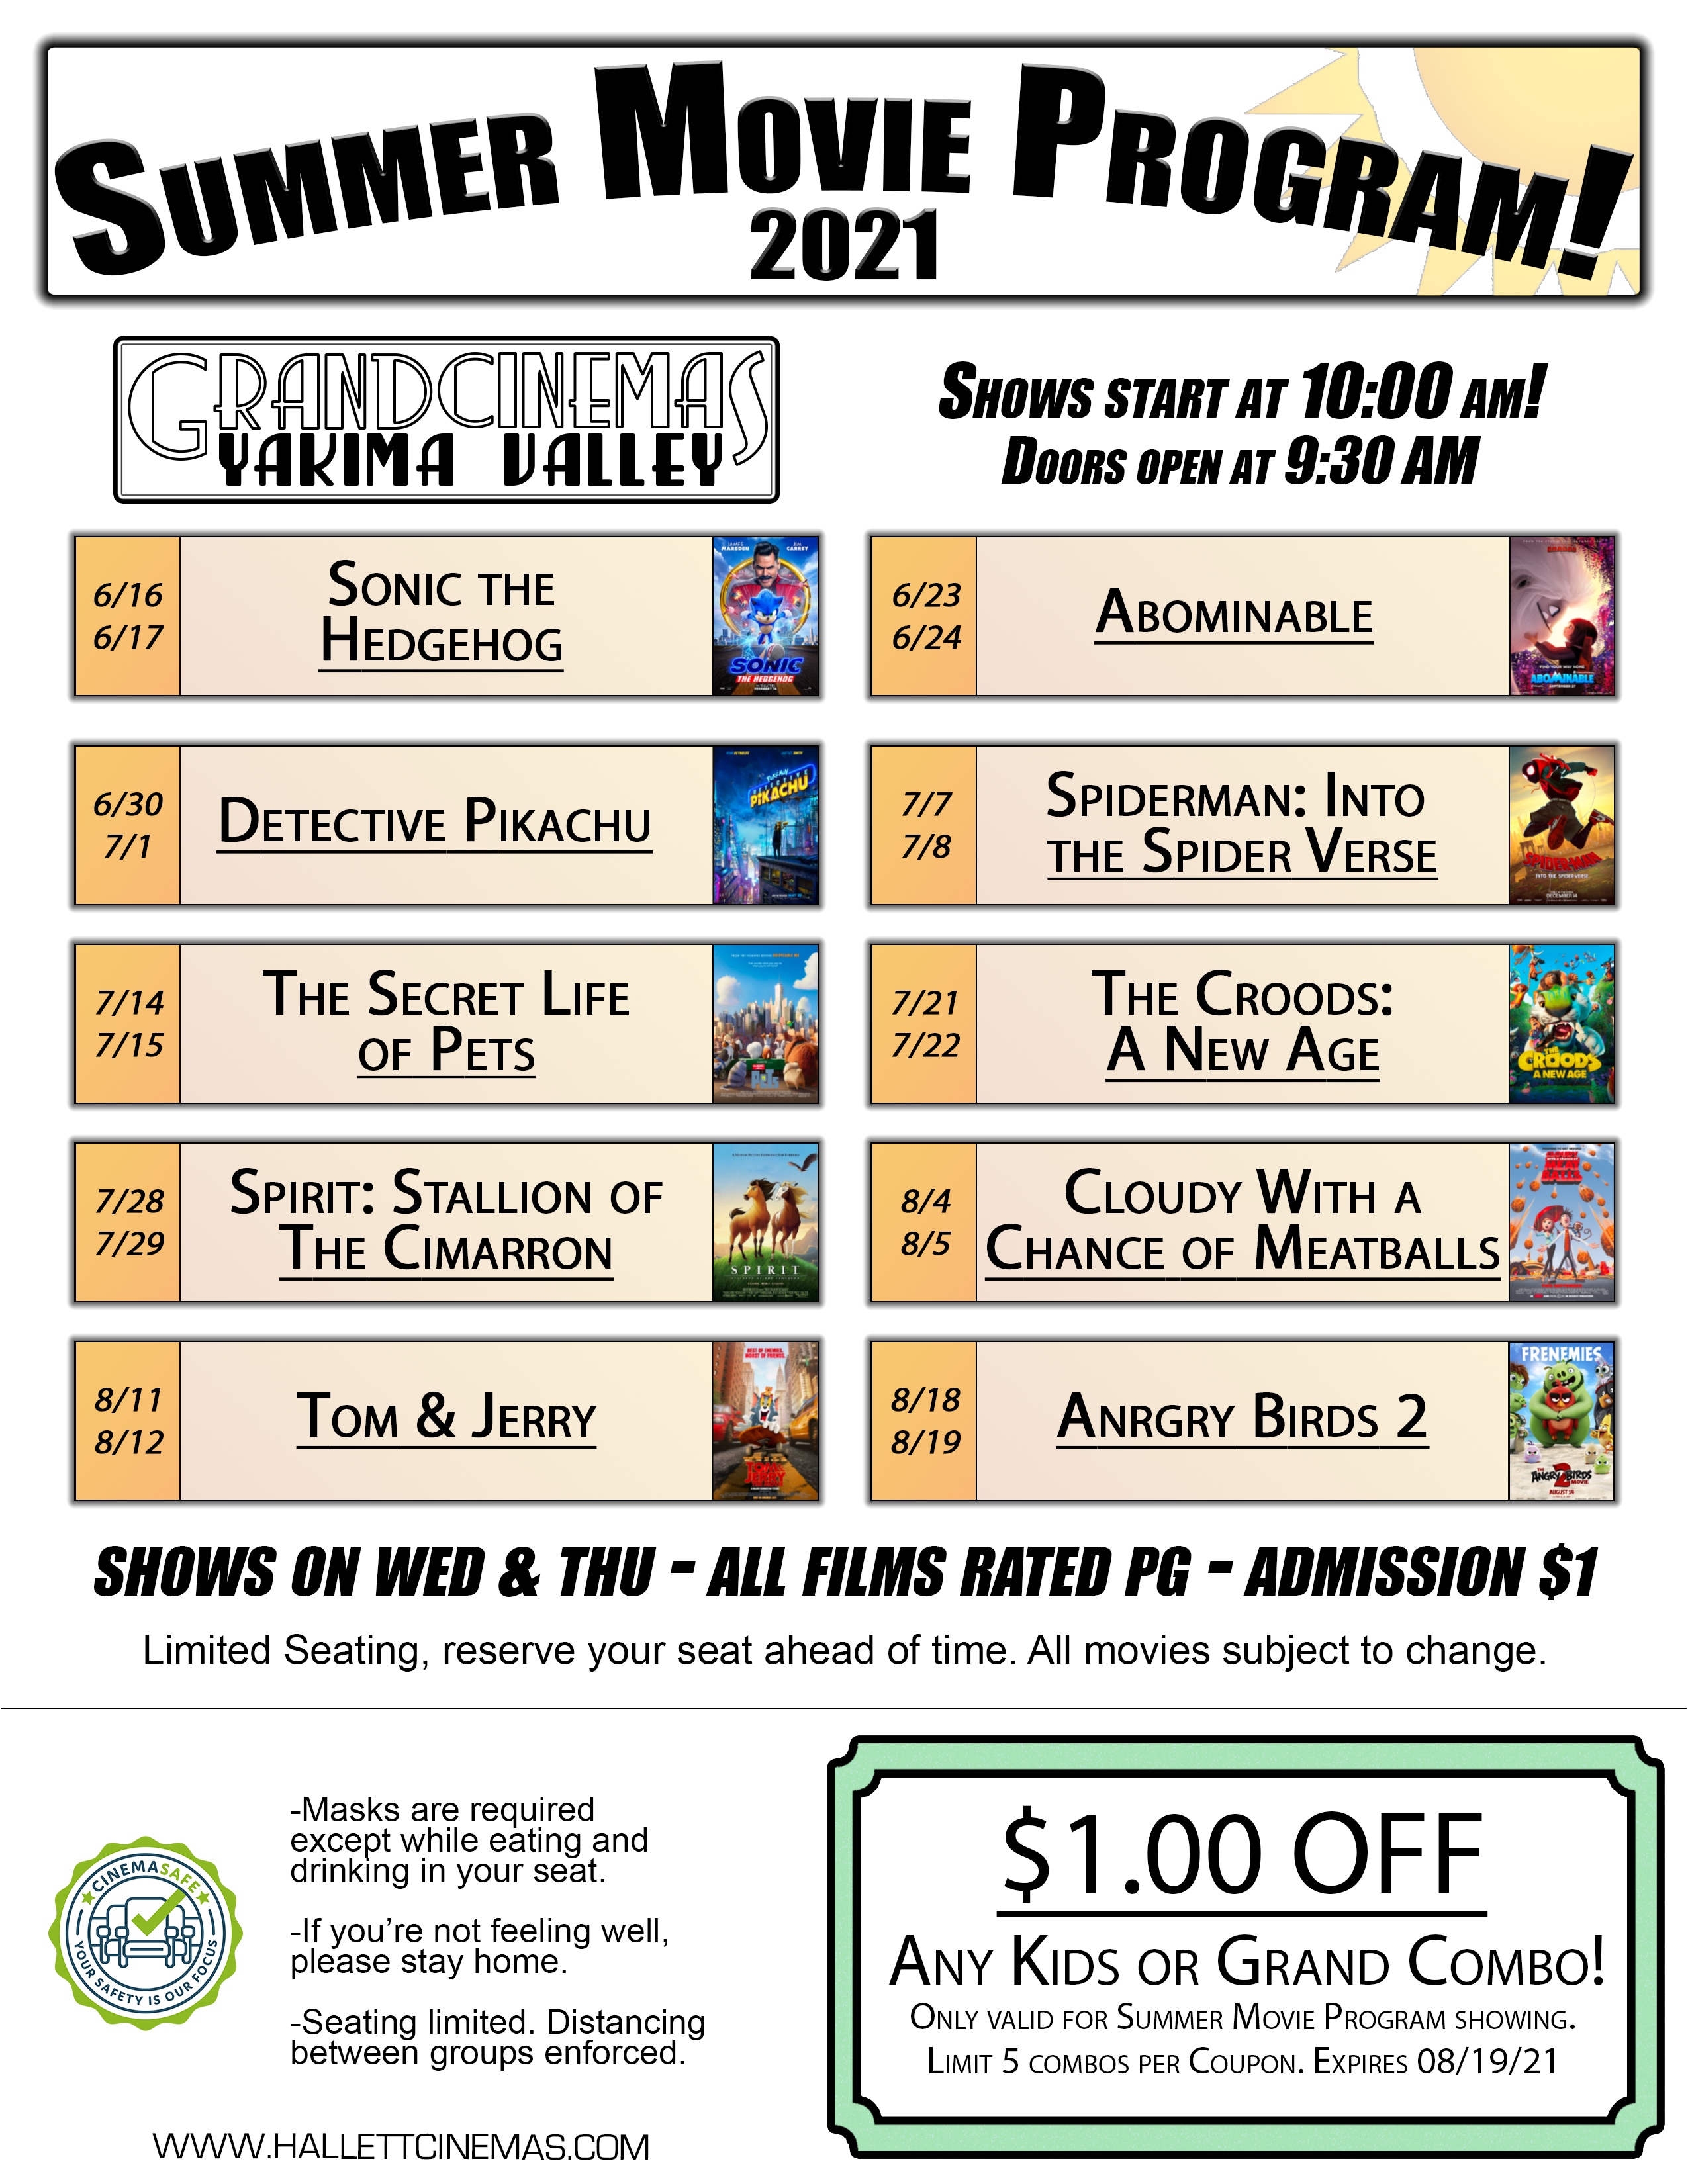 Presenting the 2021 Grand Cinemas Summer Movie Program! 10 Great Kids Films over 10 weeks! All films are rated PG! Shows on Both Wednesday and Thursday at 10am! Doors Open at 9:30am!  6/16 & 6/17- Sonic the Hedgehog 6/23 & 6/24- Abominable 6/30 & 7/1- Detective Pikachu 7/7 & 7/8- Spiderman: Into the Spider Verse 7/14 & 7/15- The Secret Life of Pets 7/21 & 7/22- The Croods: A New Age 7/28 & 7/29- Spirit: Stallion of the Cimarron 8/4 & 8/5- Cloudy With a Chance of Meatballs 8/11 & 8/12- Tom & Jerry 8/18 & 8/19- Angry Birds 2 Any question? Call us at 509-837-7182!